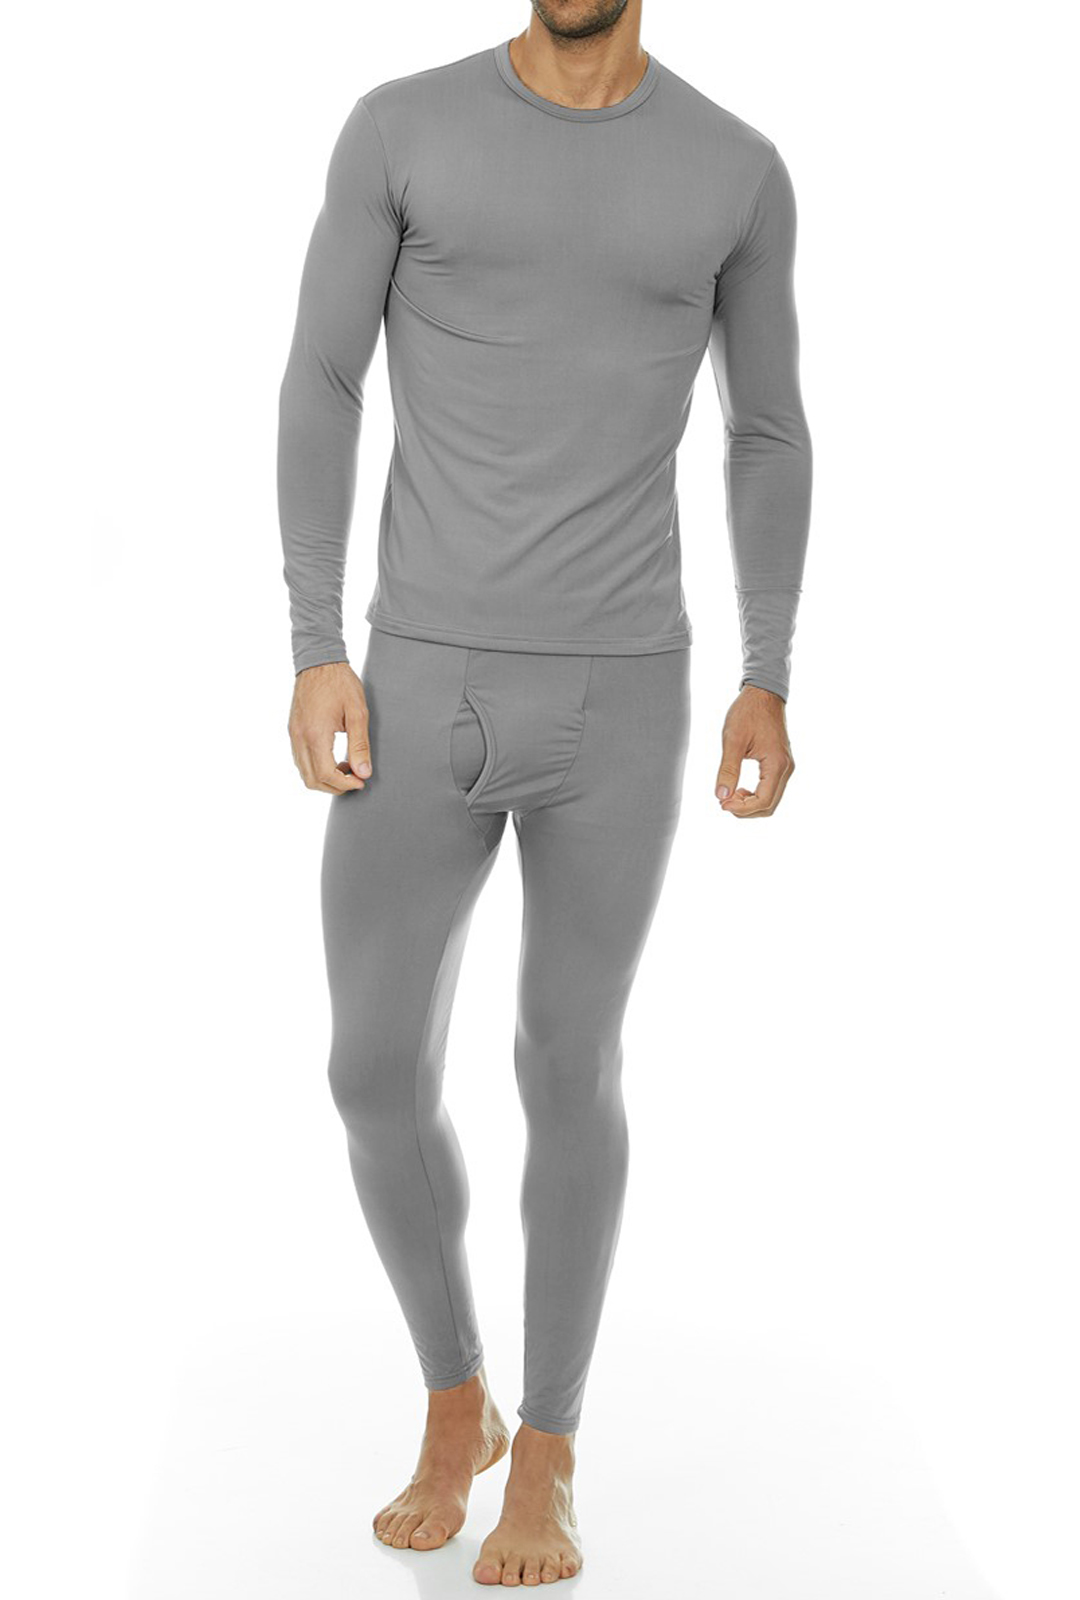 Refly Womens Super Soft Skin-Friendly and Generous Stretchy fit Thermal Underwear Long Johns Set